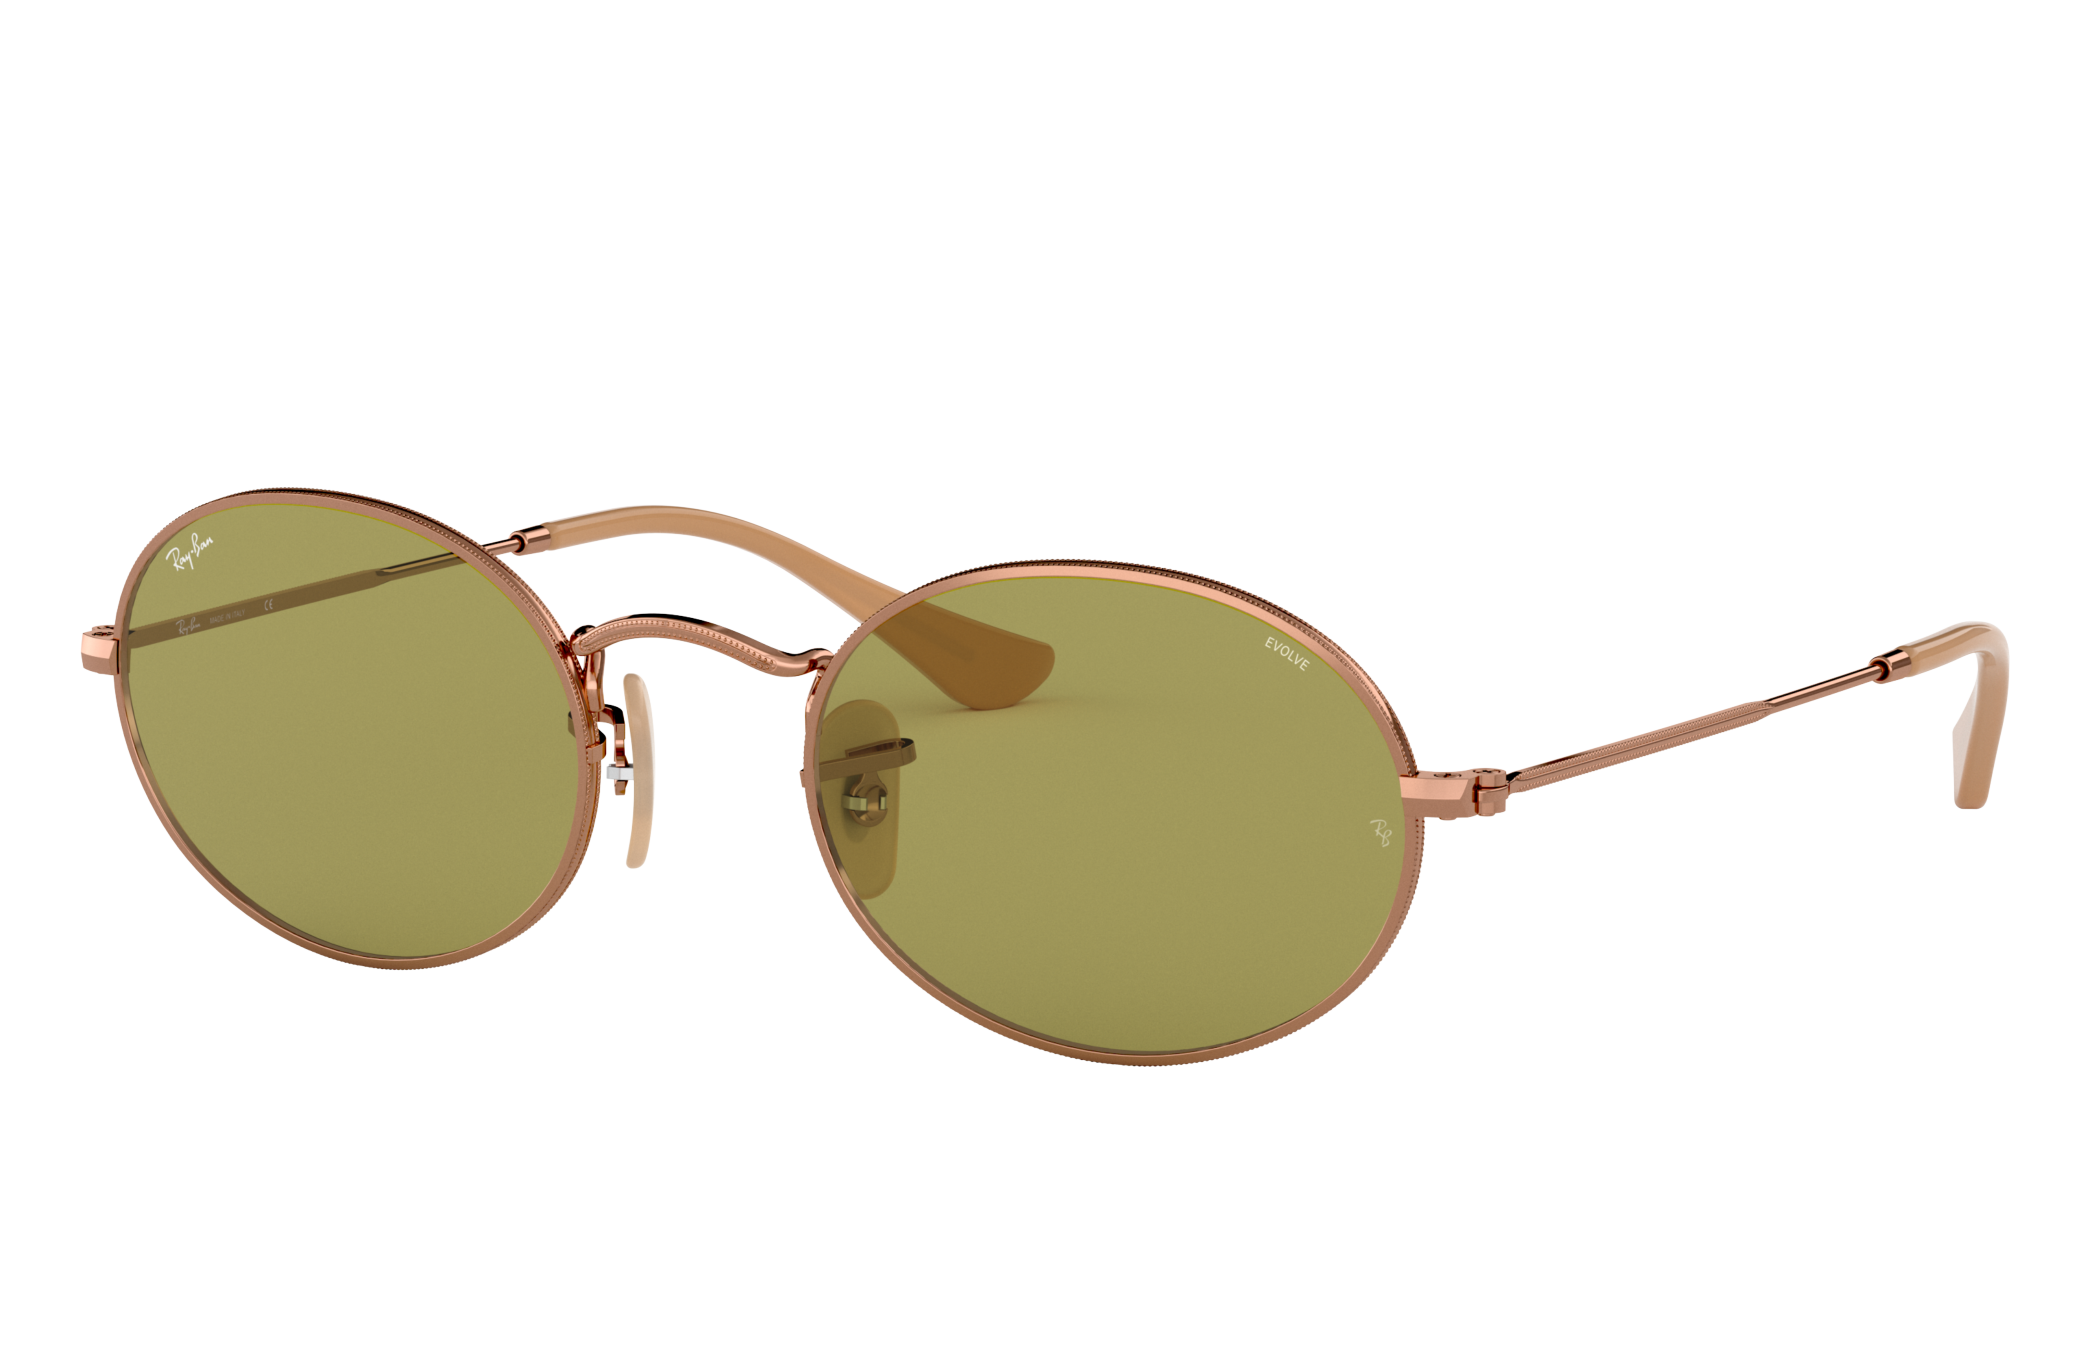 Ray-Ban Oval Washed Evolve Bronze-Copper, Green Lenses - RB3547N